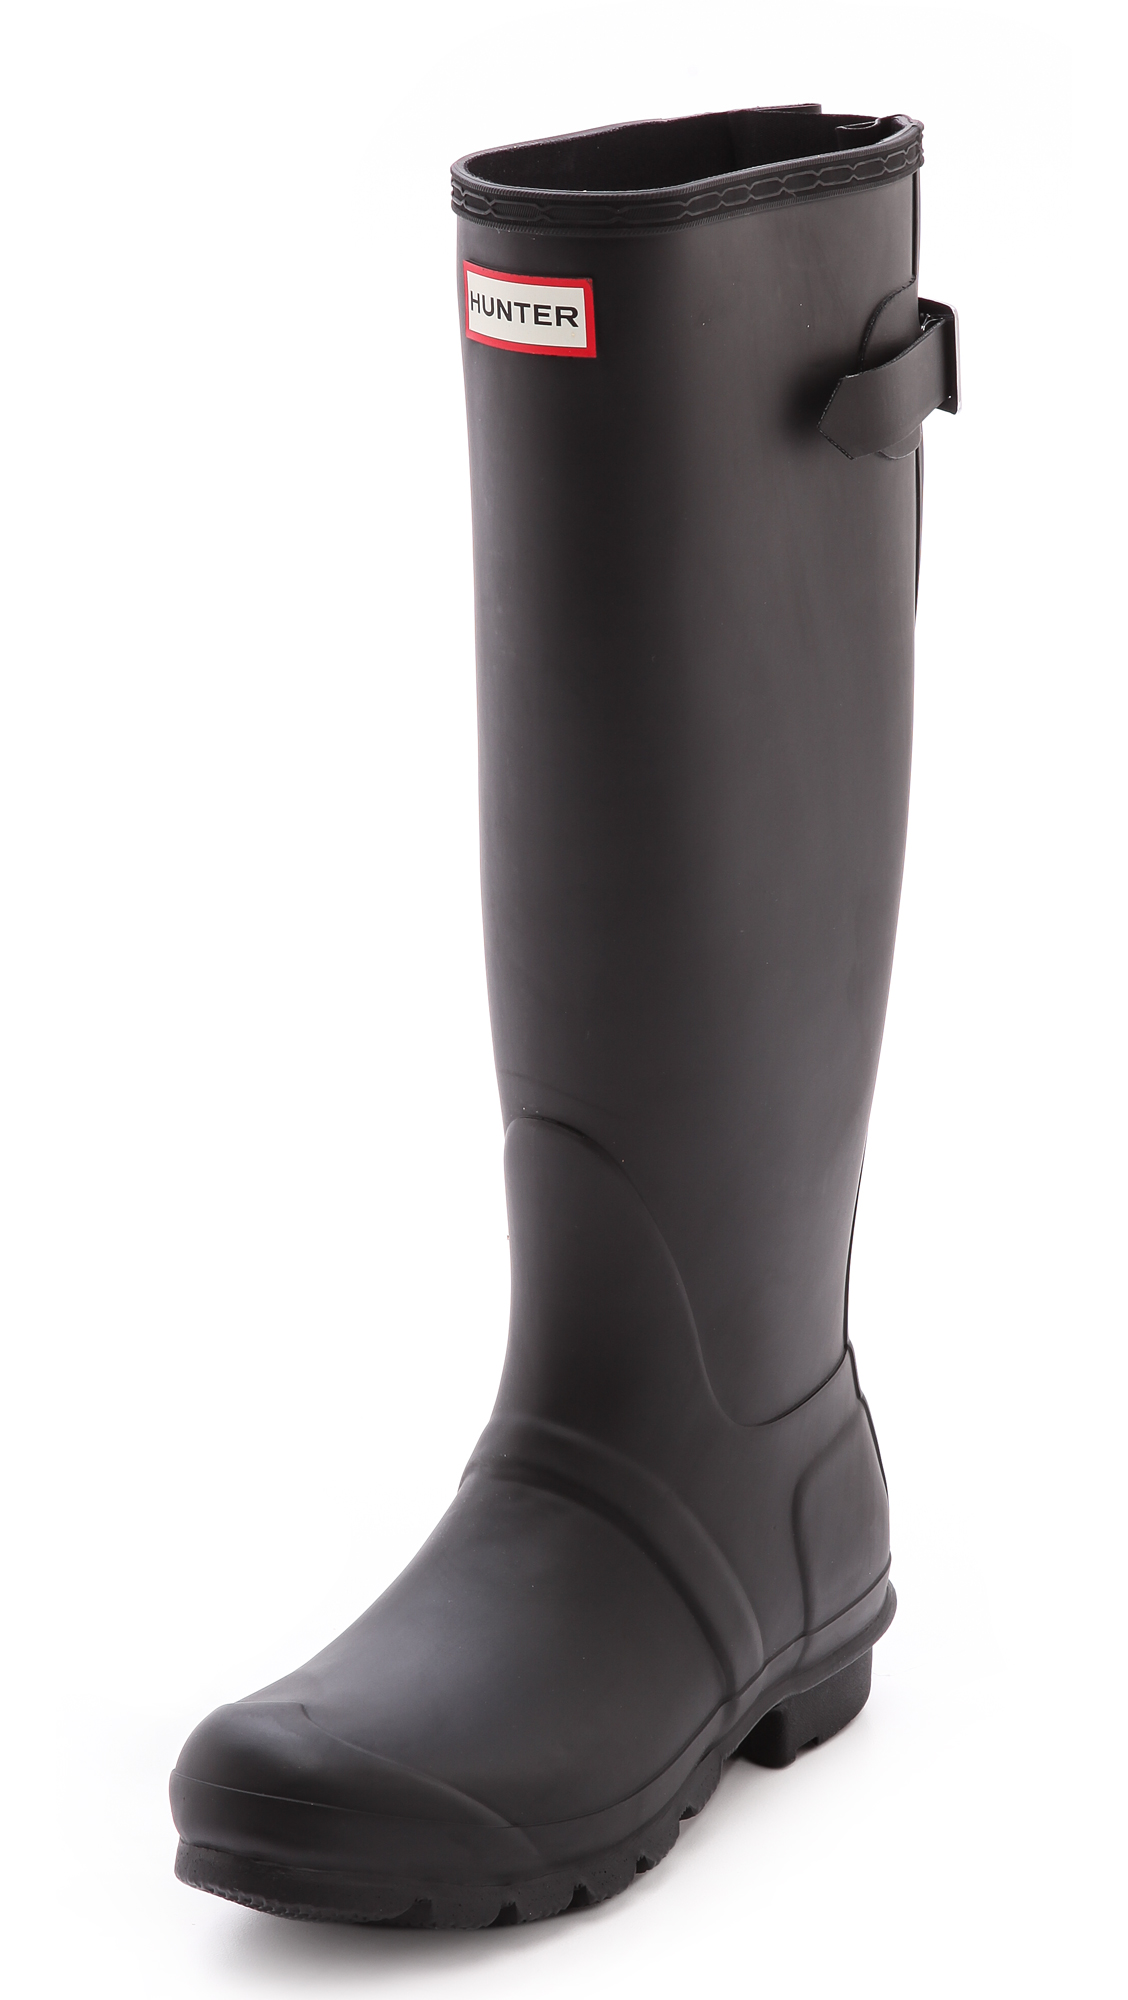 Hunter Boots Original Back Adjustable Boots - Black at Shopbop